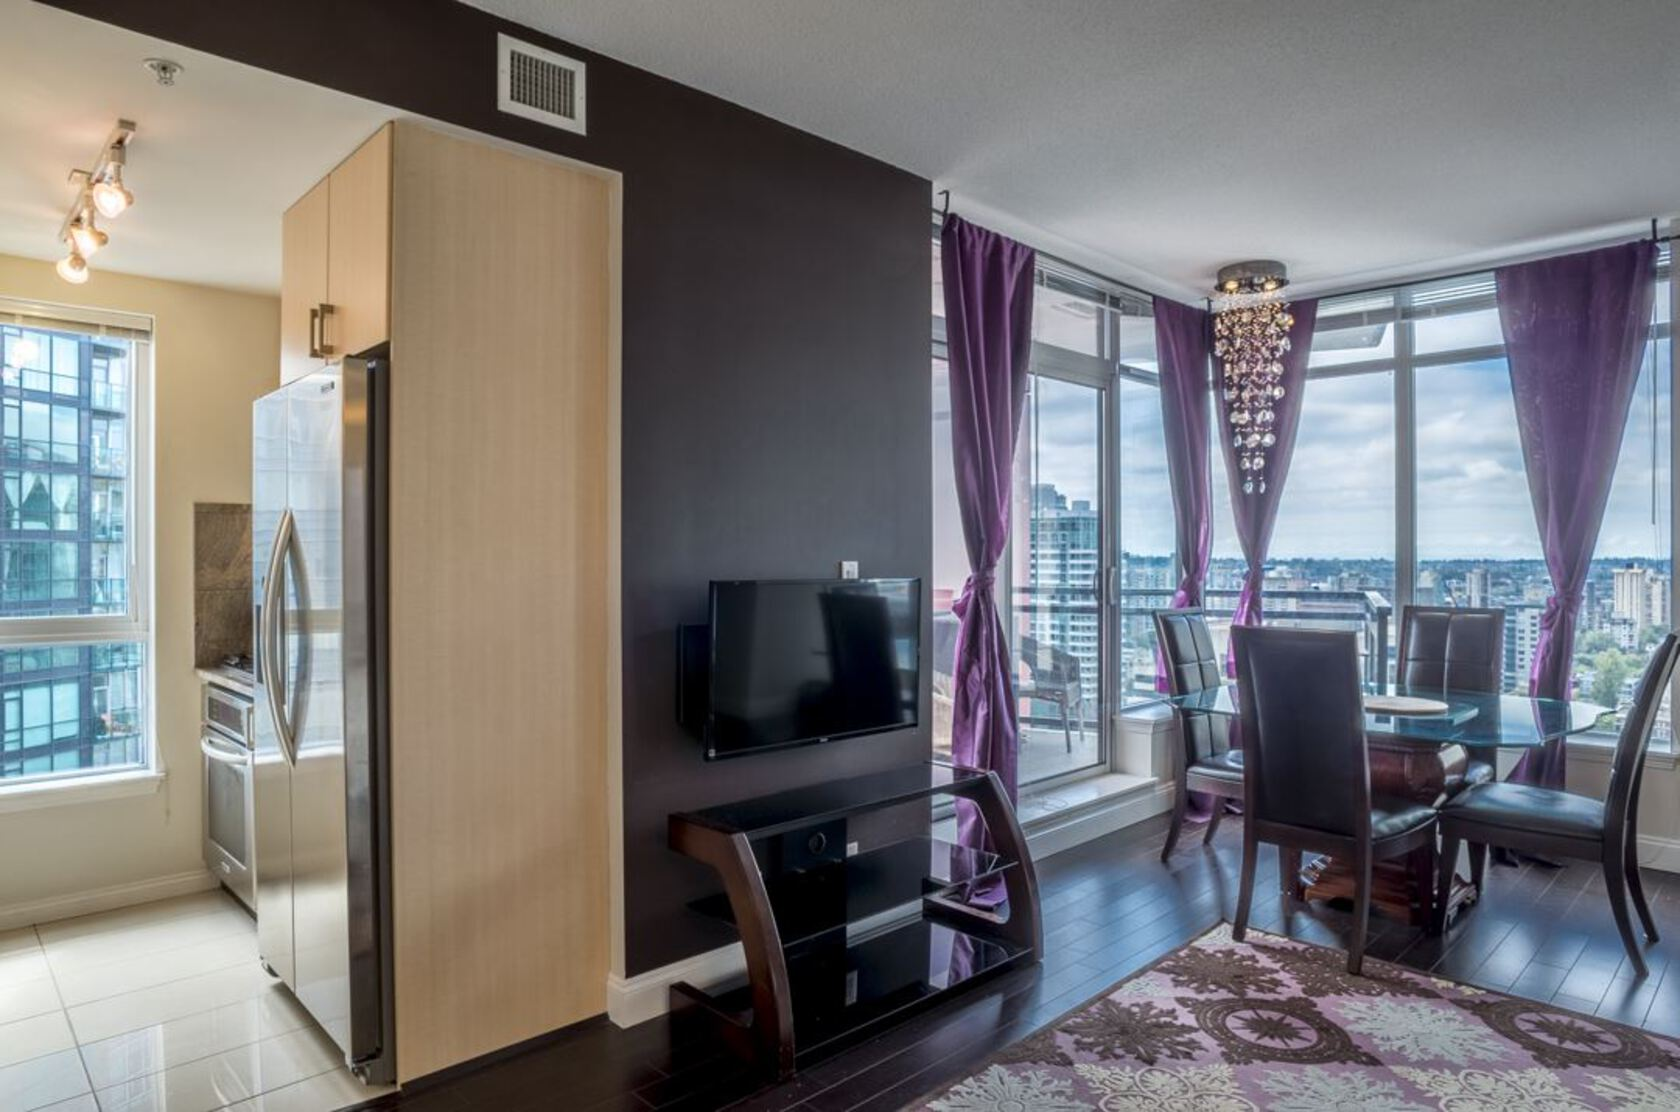 262128478-7 at 34th floor - 1211 Melville , Coal Harbour, Vancouver West